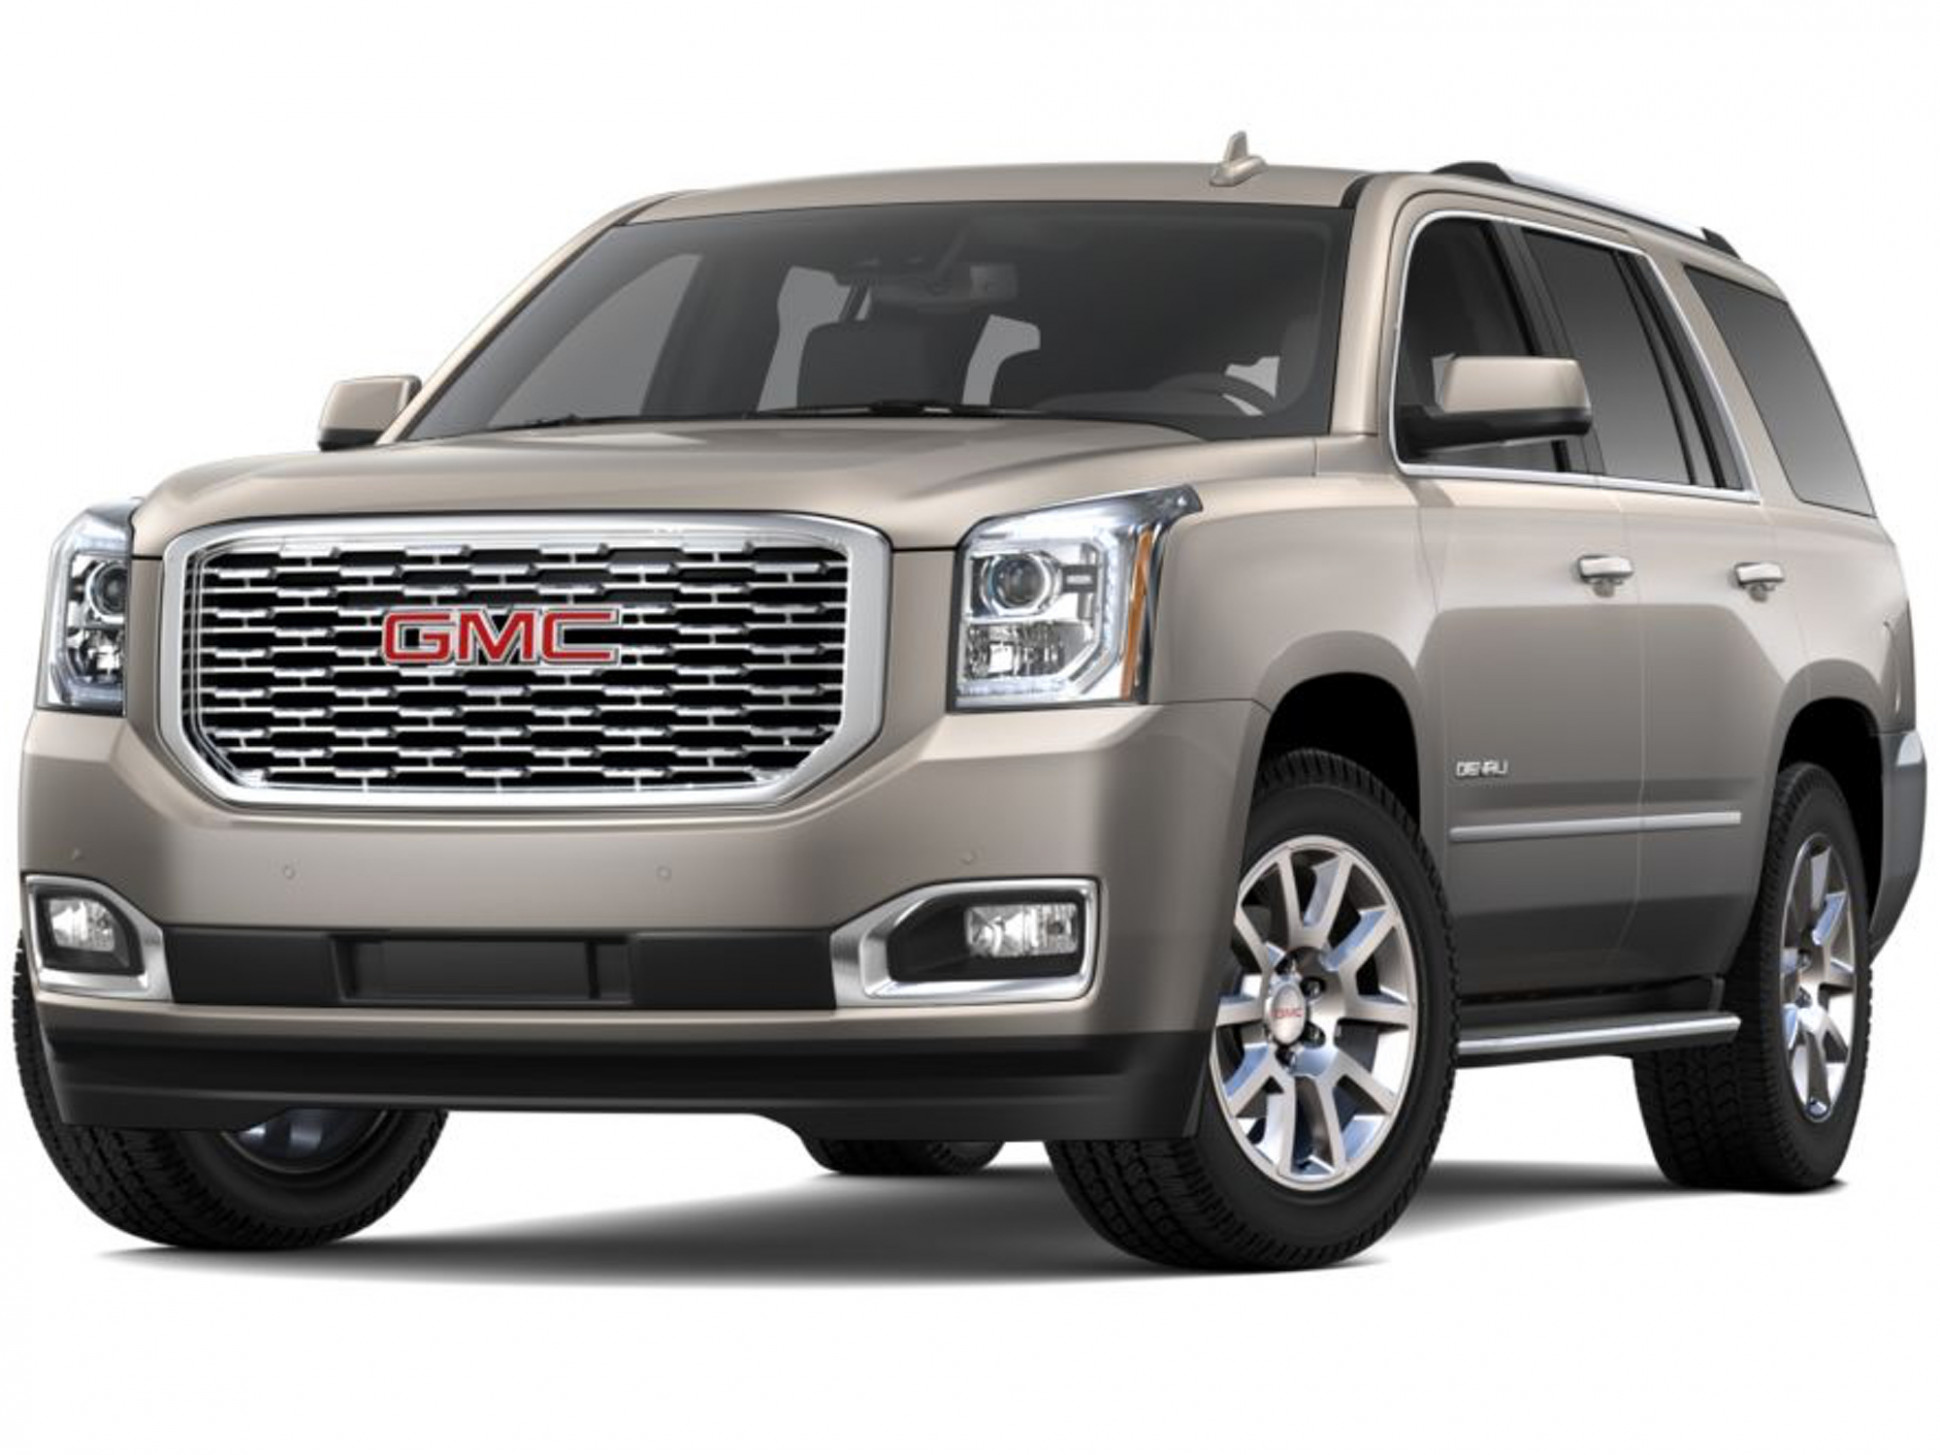 6 GMC Yukon: Here's What's New And Different | GM Authority